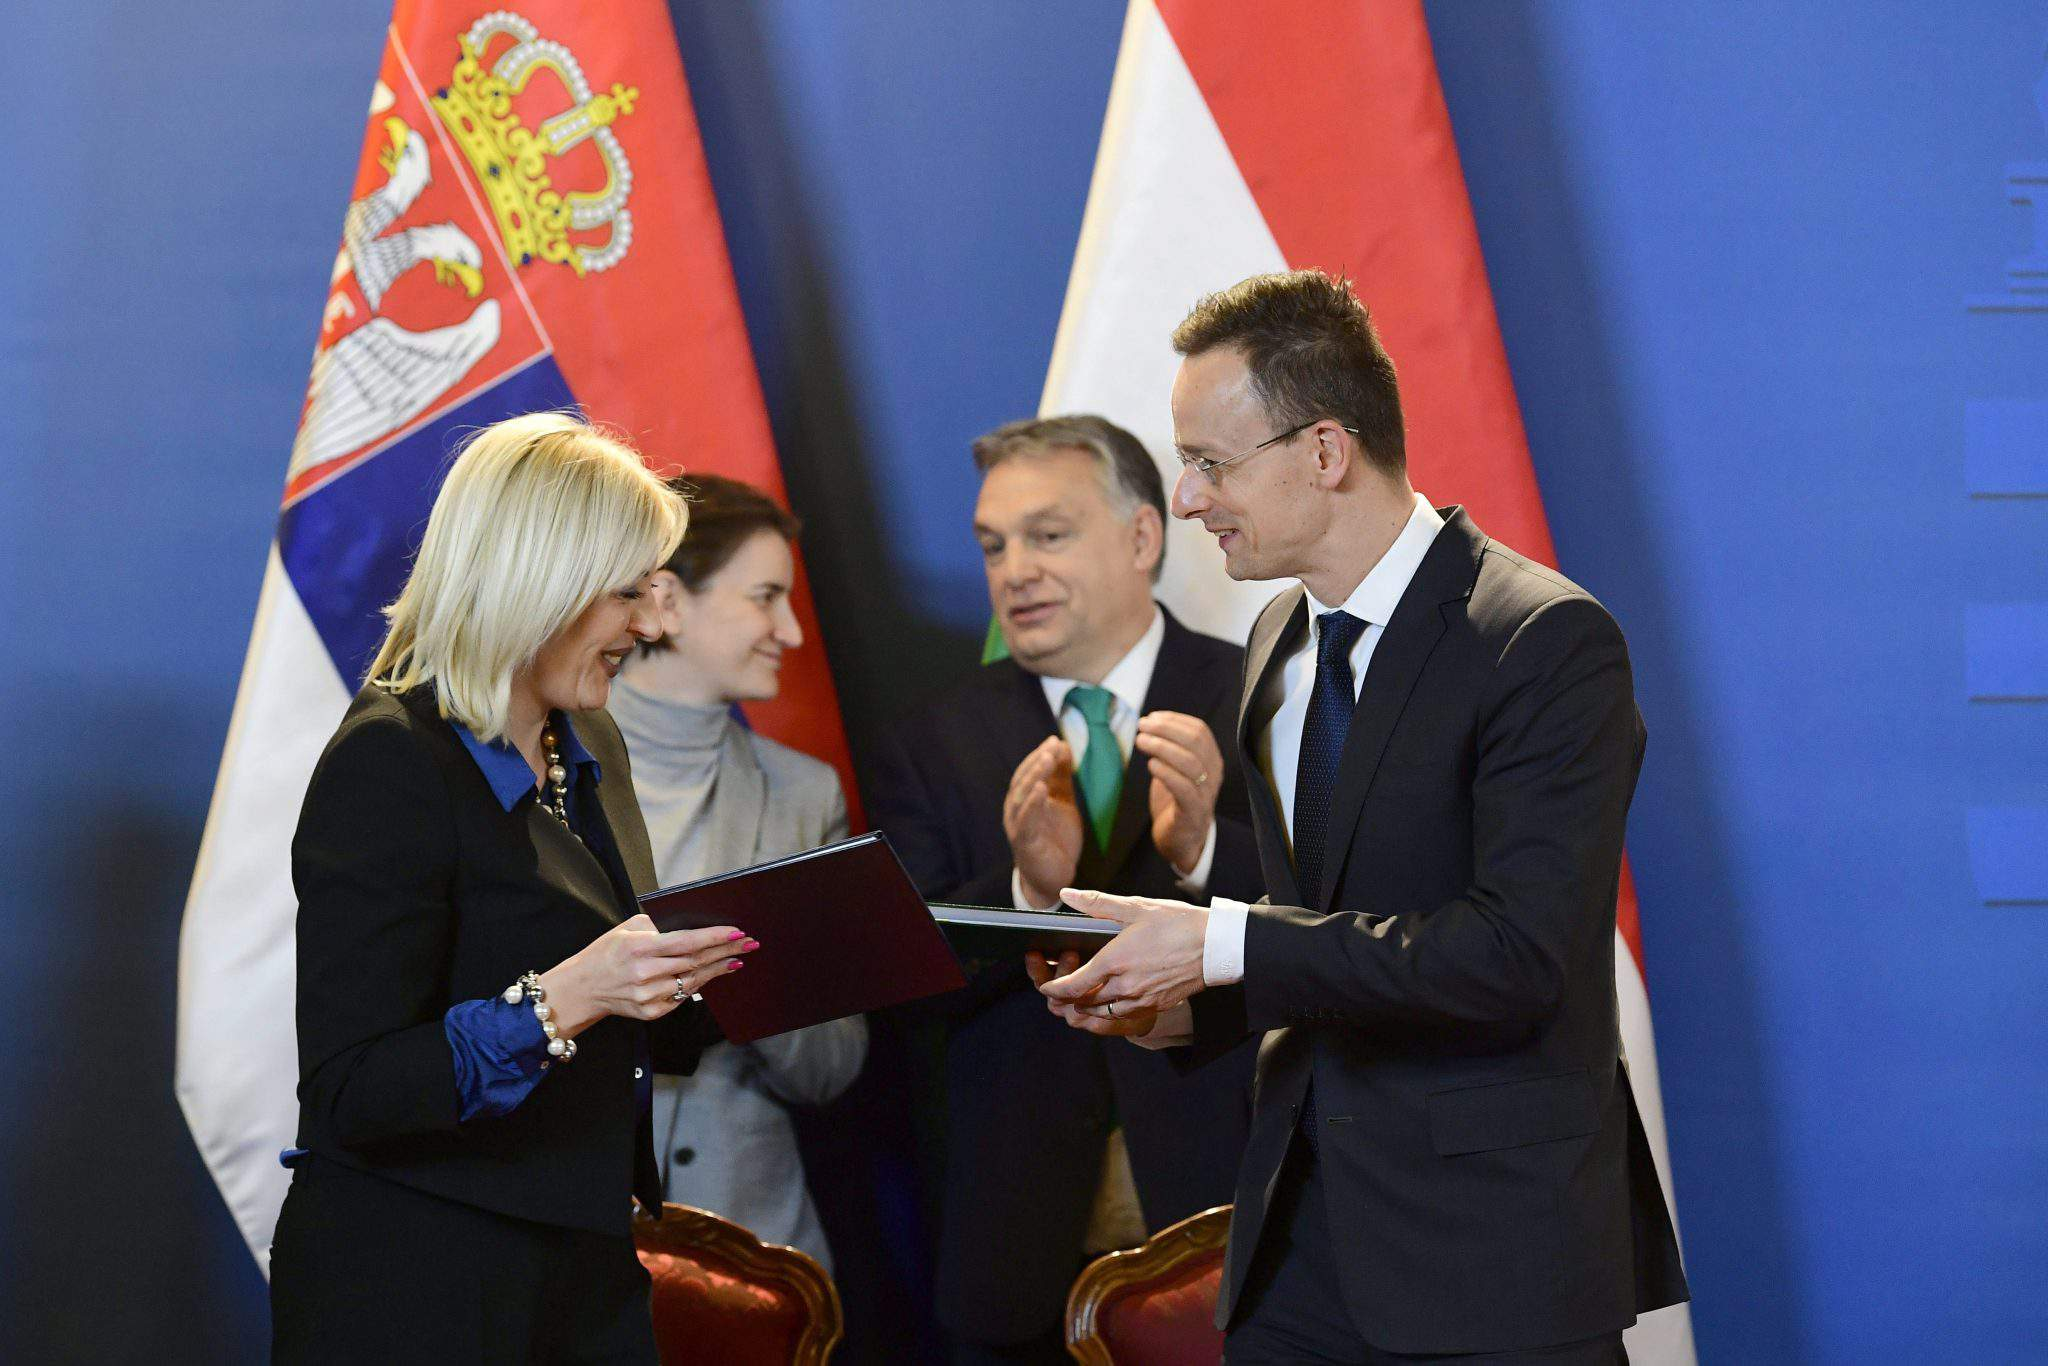 Serbia Hungary summit agreement